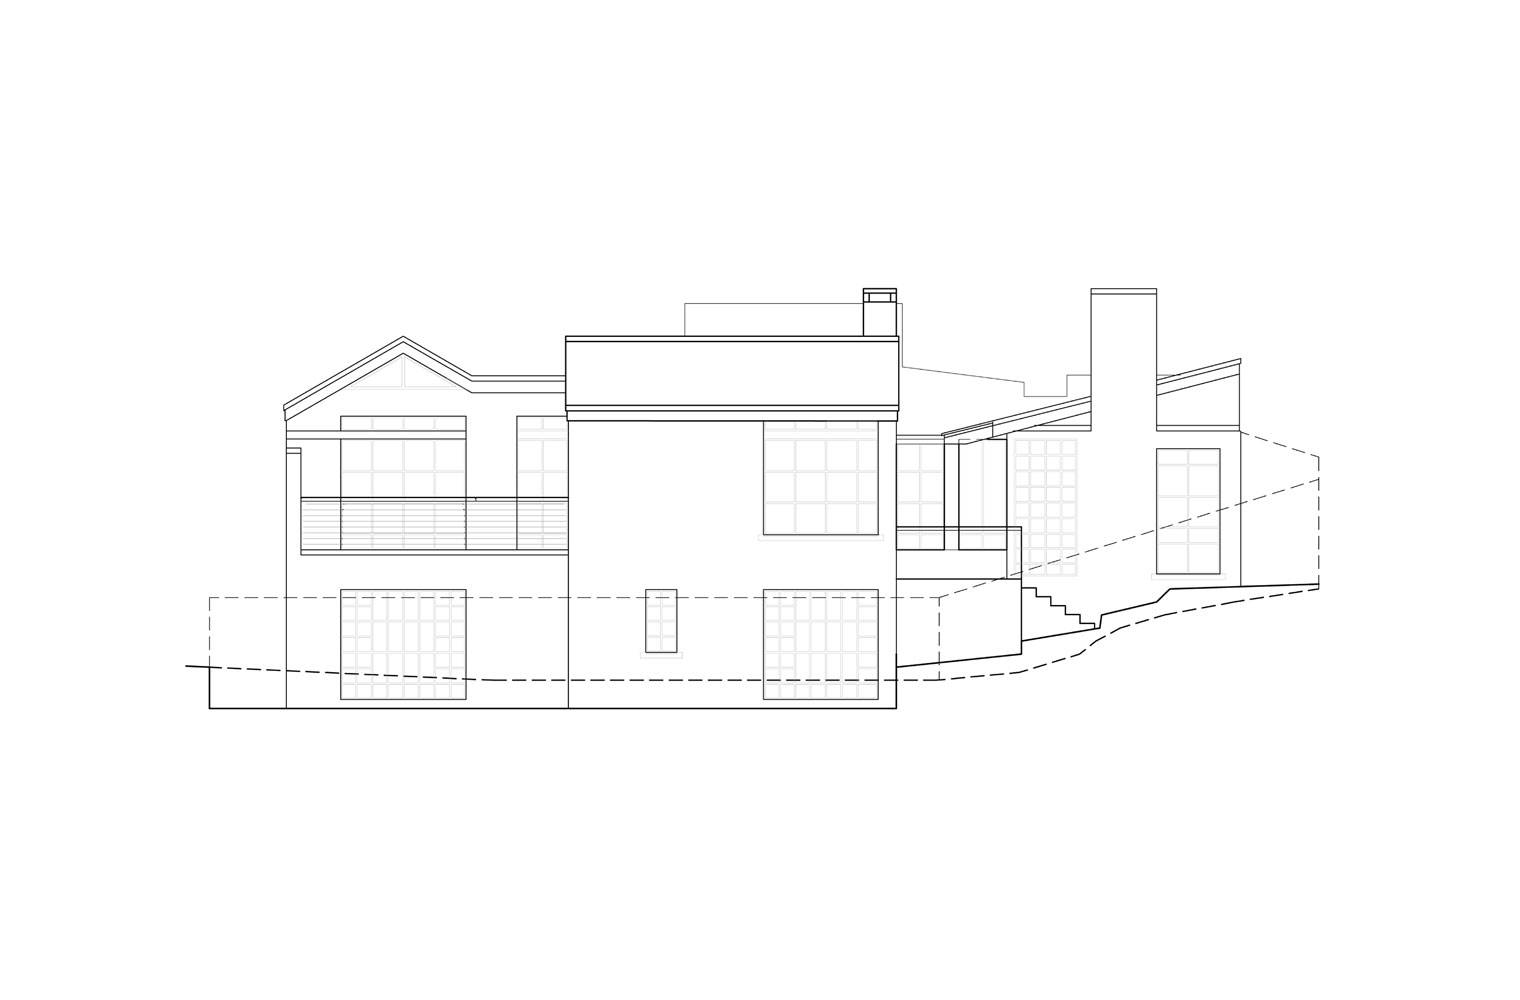 House Aucamp, Oosthuizen - North Elevation